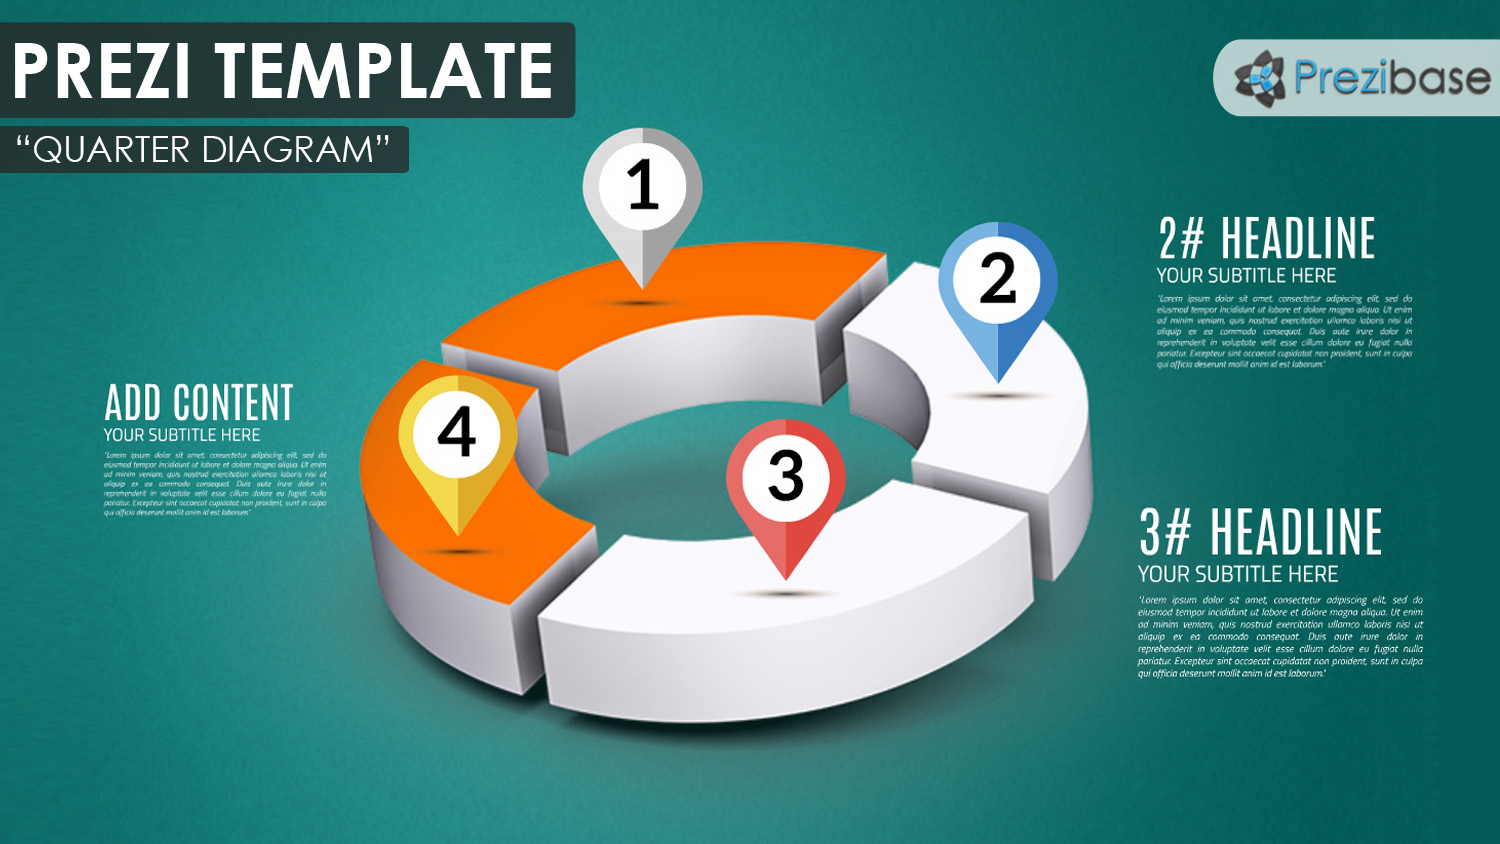 Business prezi templates prezibase 3d quarter chart circle diagram prezi template pronofoot35fo Gallery